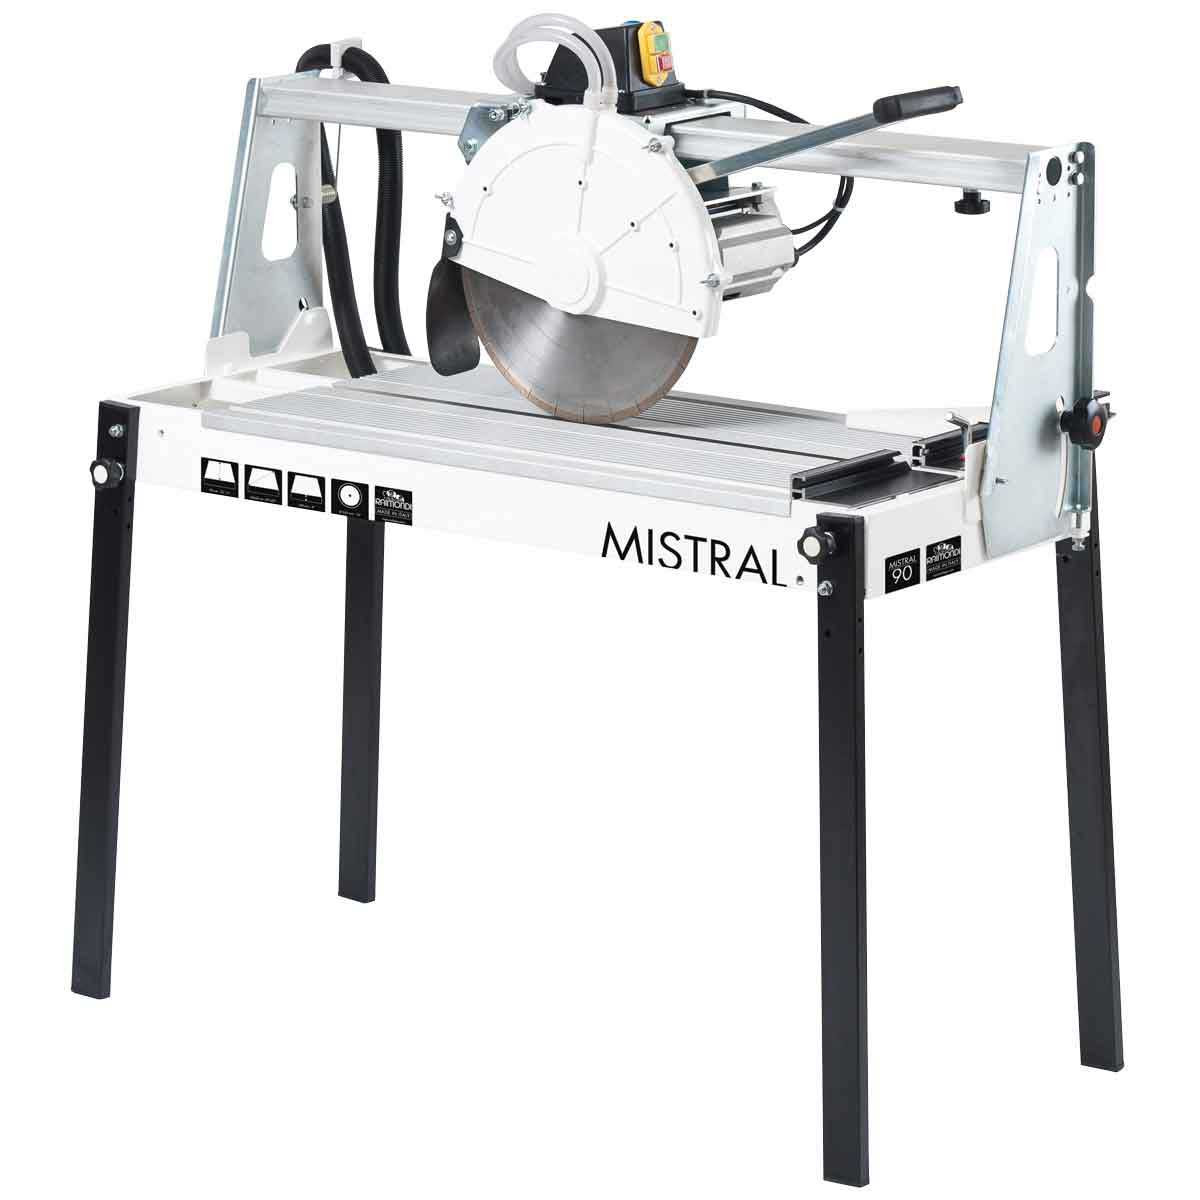 Raimondi Mistral Rail Stone Saw